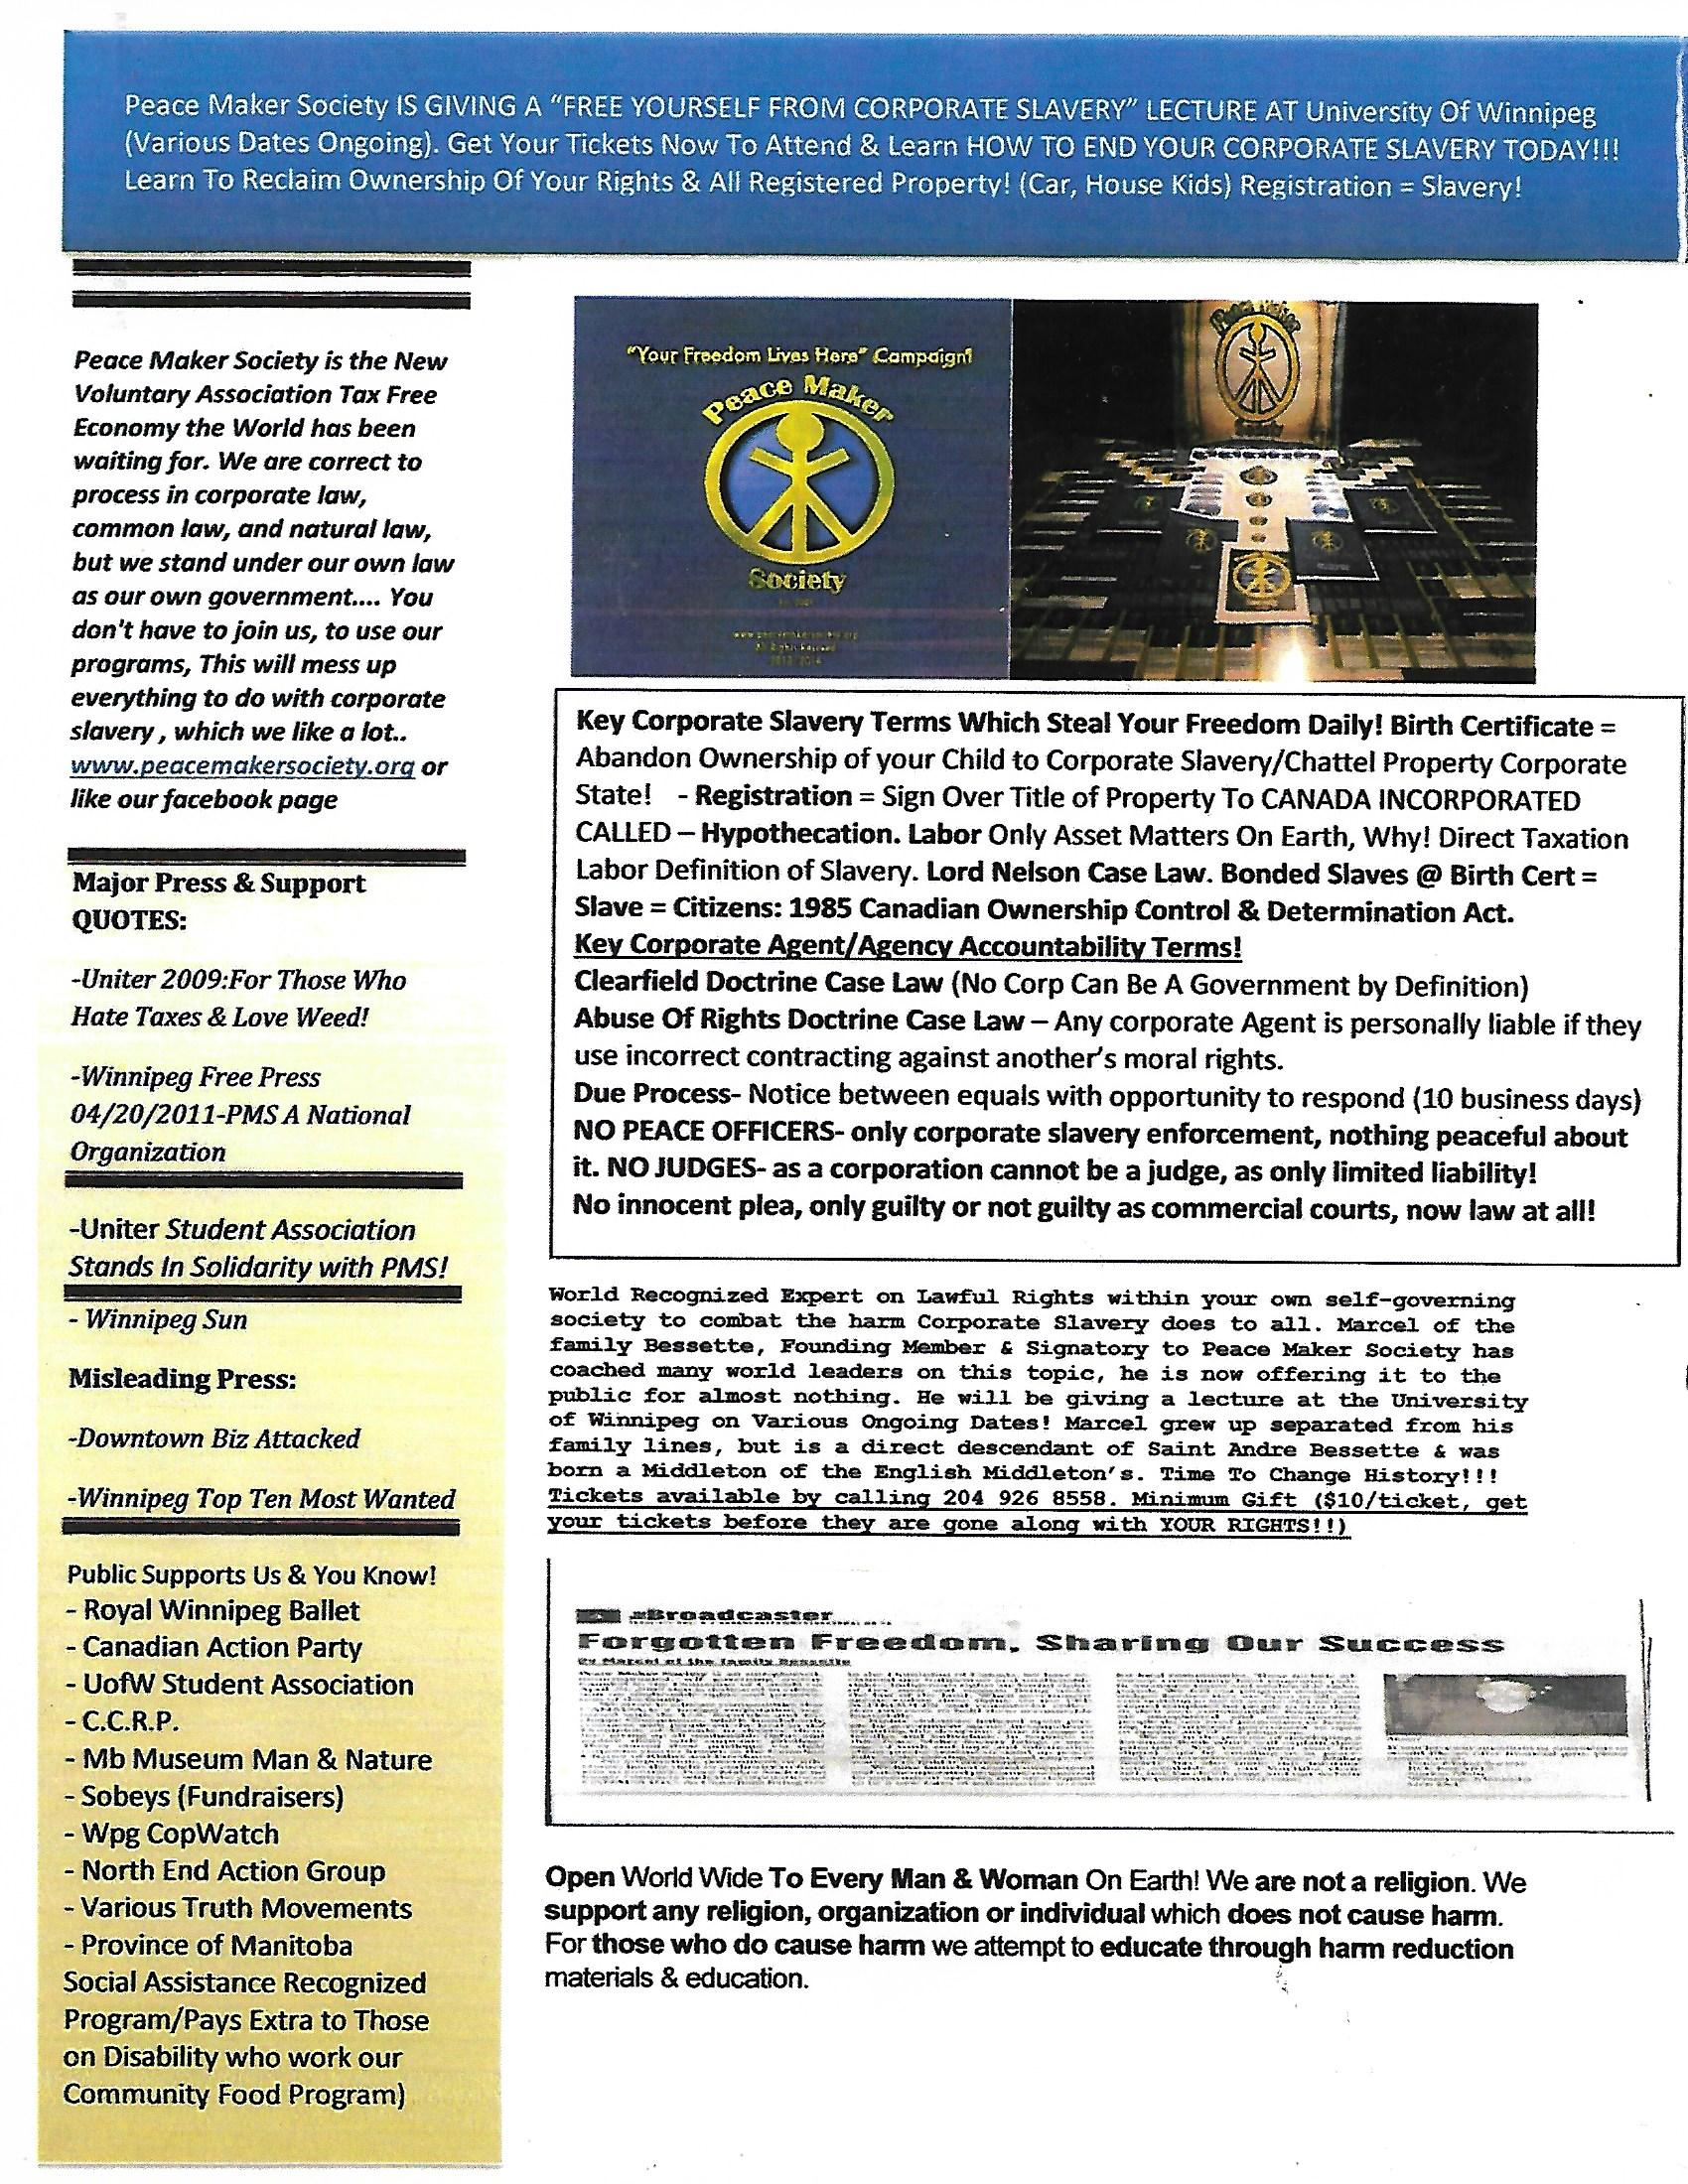 Freedom Ticket Lecture Flyer Pg1